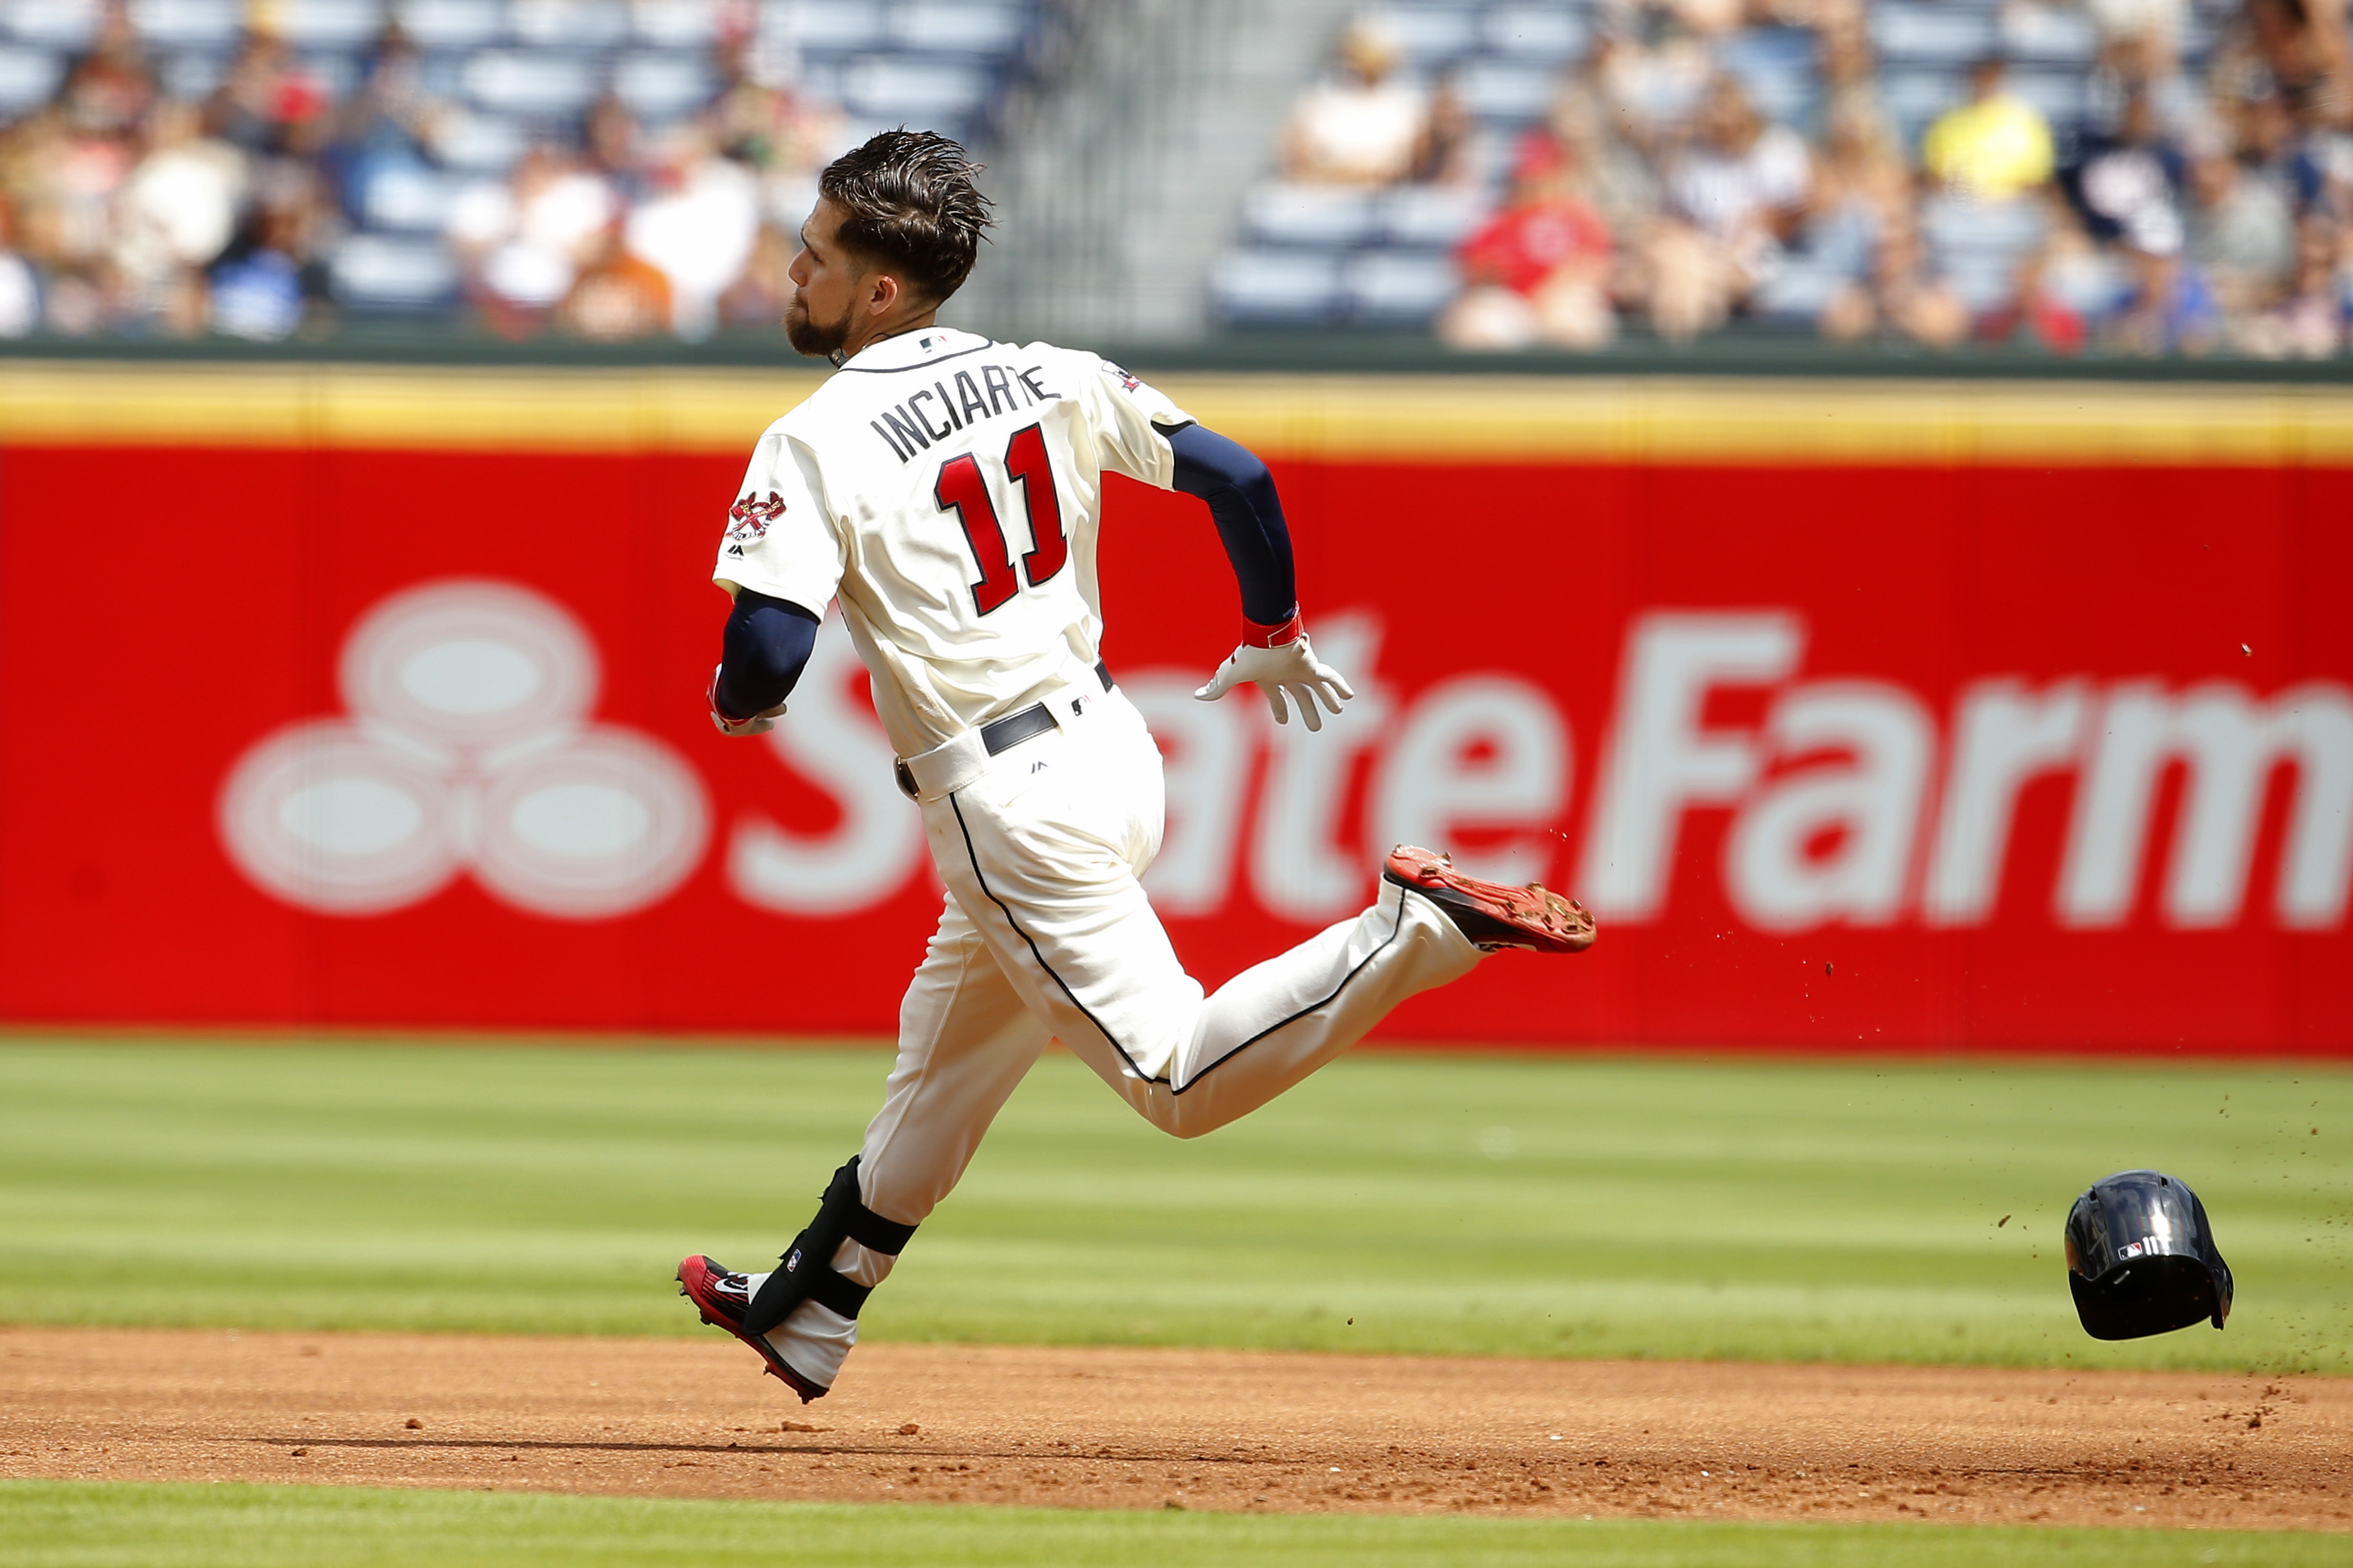 Atlanta Braves Ender Inciarte (11) rounds first after hitting a double in the first inning of a baseball game against the Washington Nationals, Saturday, Sep. 17, 2016, in Atlanta. (AP Photo/Todd Kirkland)